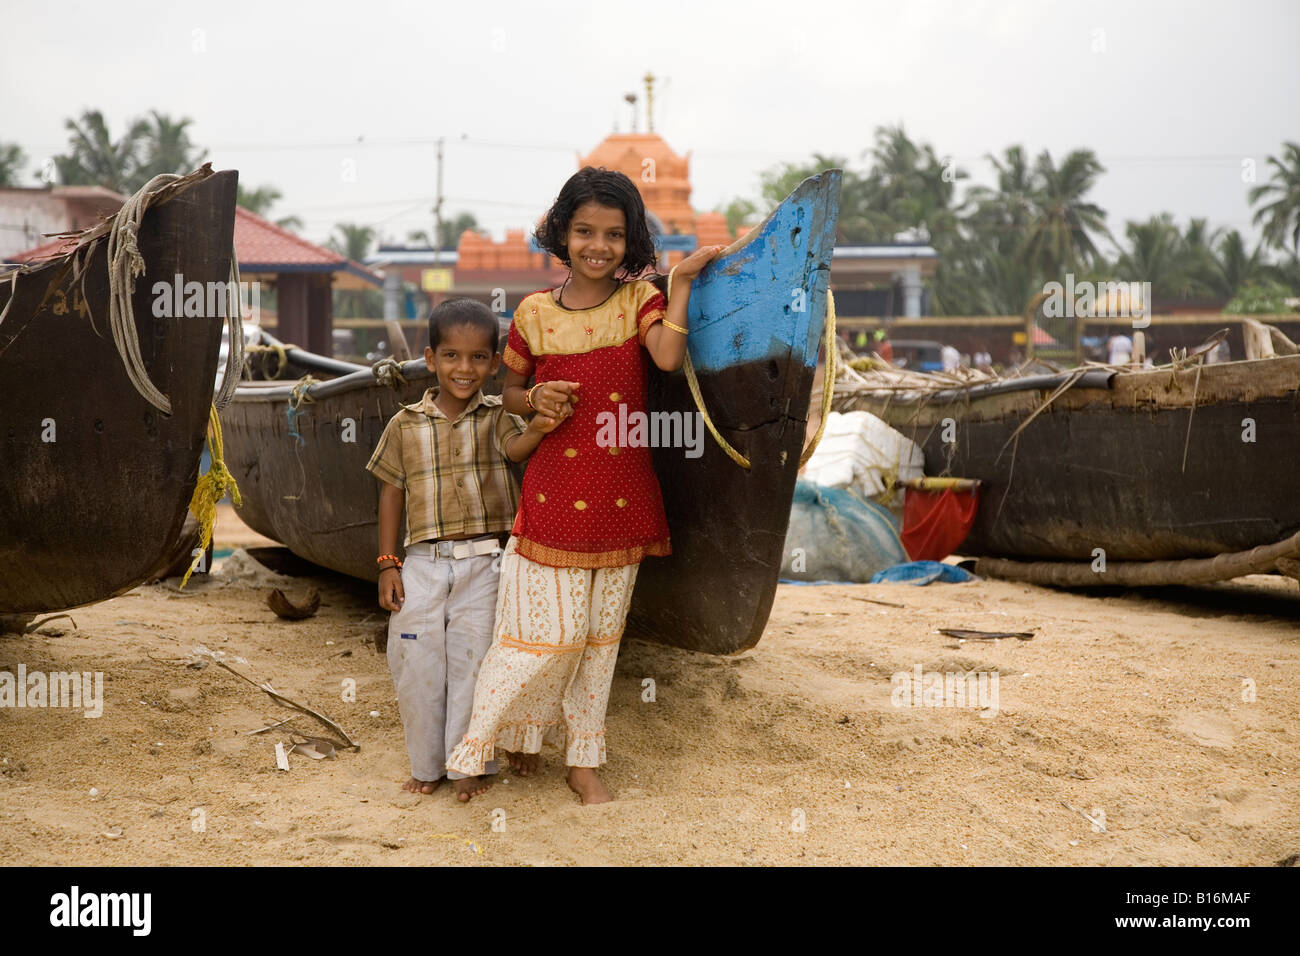 Two children grin for the camera on Kappil Beach in Kasaragod, Kerala. Fishing boats are pulled up on the beach behind them. Stock Photo